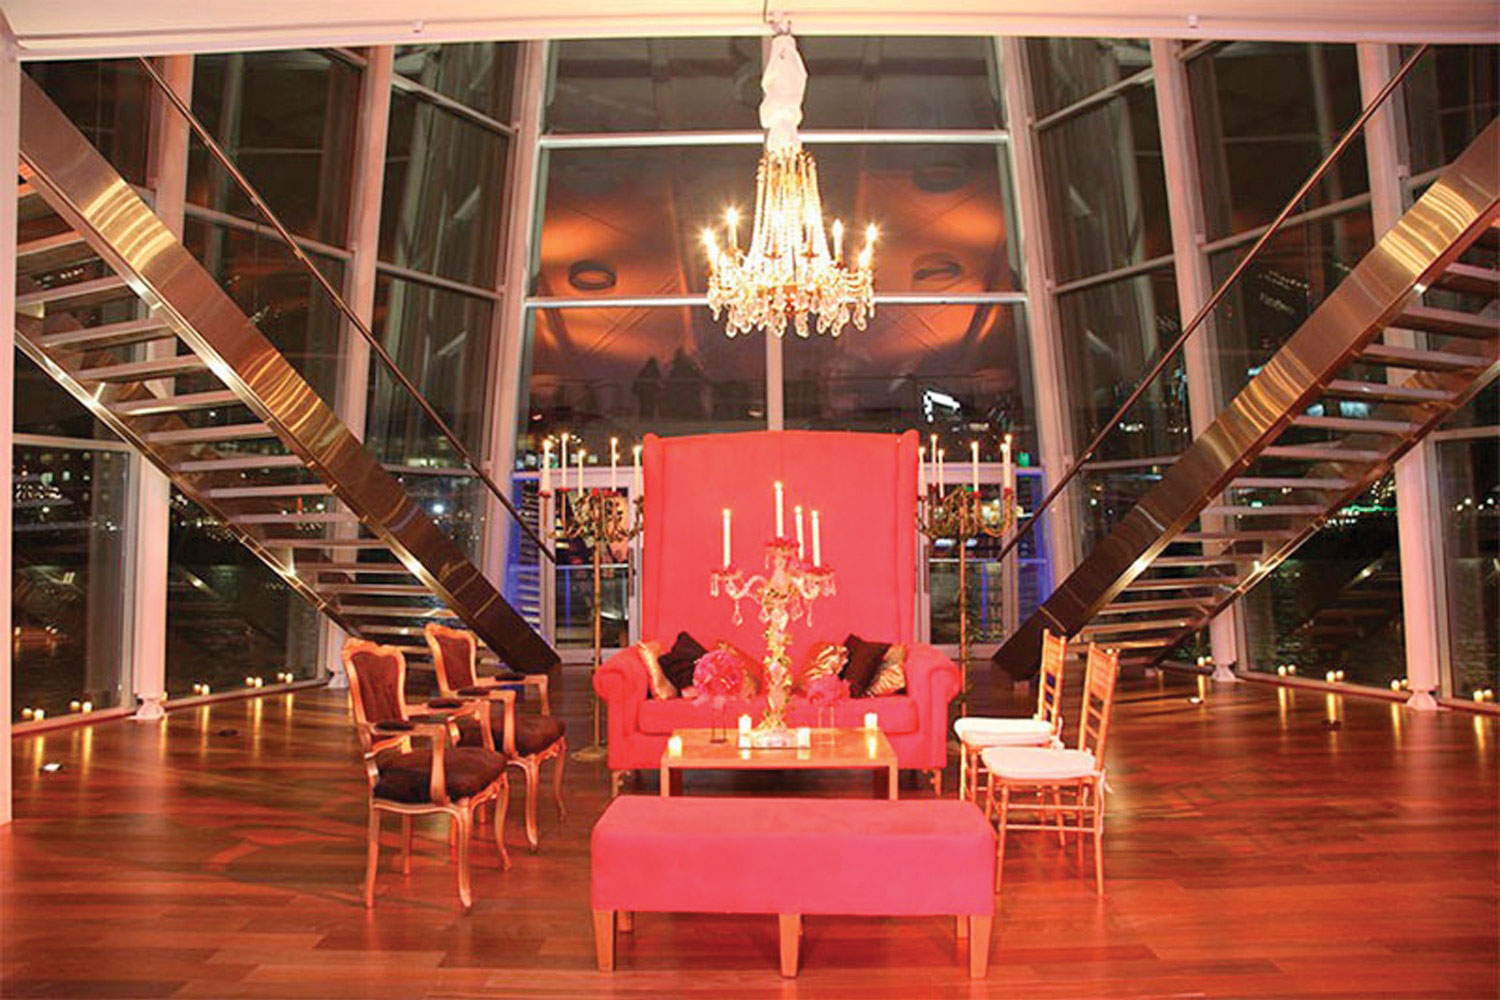 Madero Walk in Eventos, Buenos Aires, is a floating ballroom.